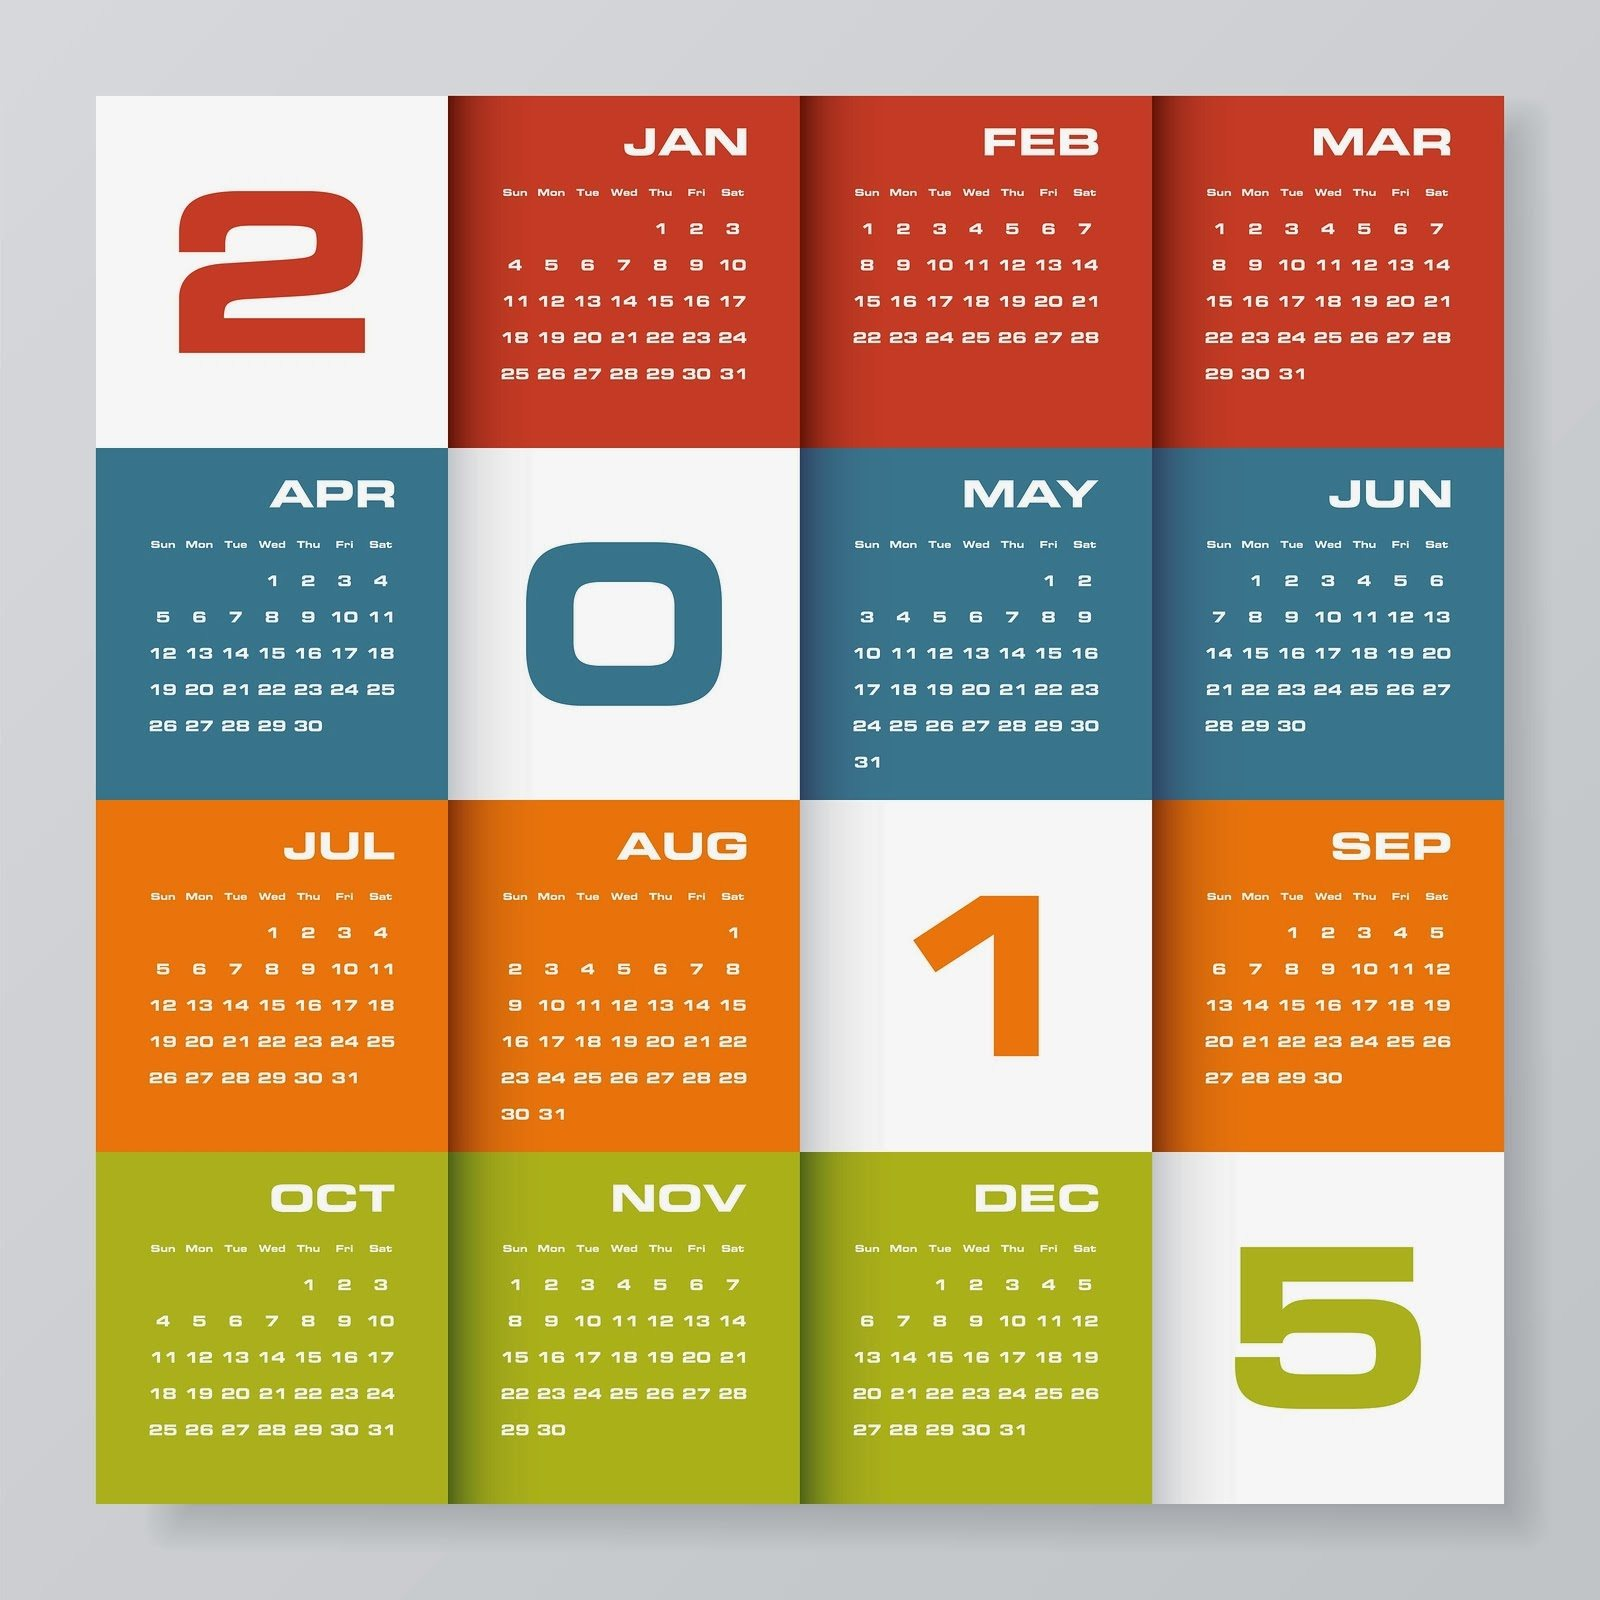 Monthly Event Calendar Design : Amazing calendar for year designs page